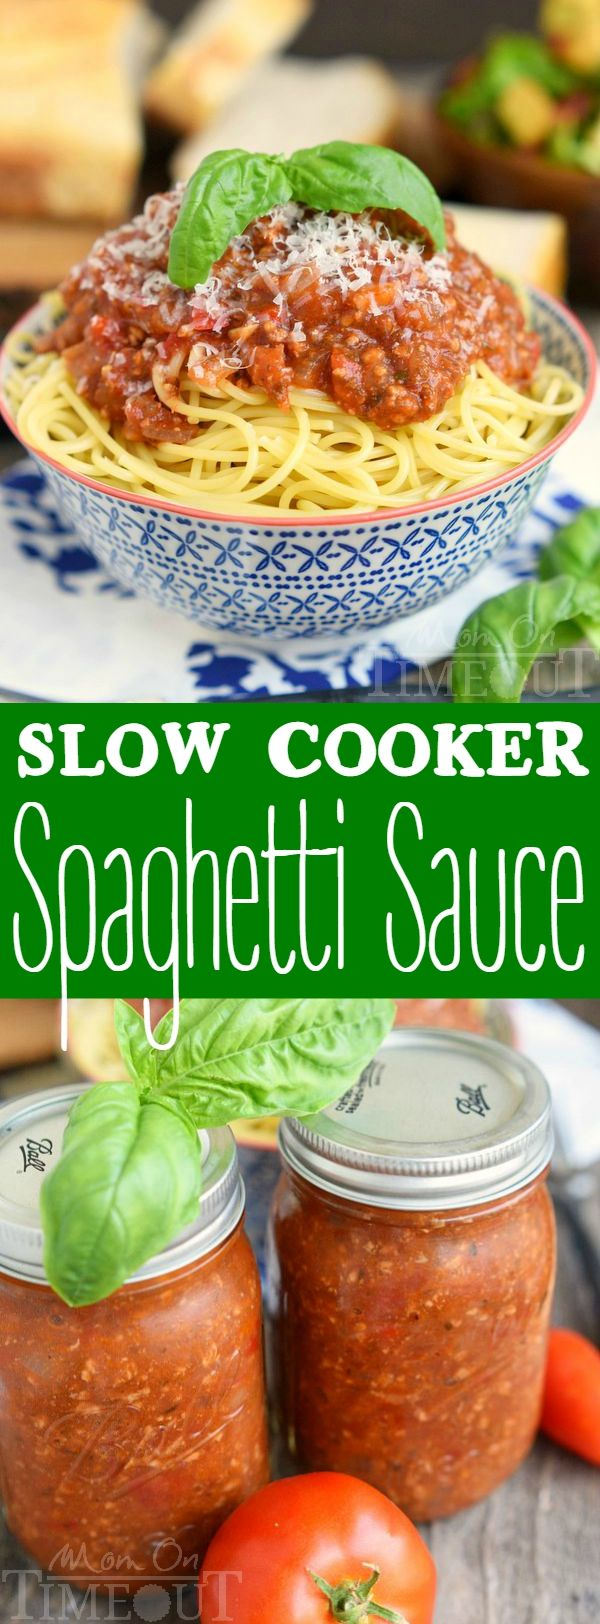 + images about Slow Cooker on Pinterest | Slow Cooker Spaghetti Sauce ...